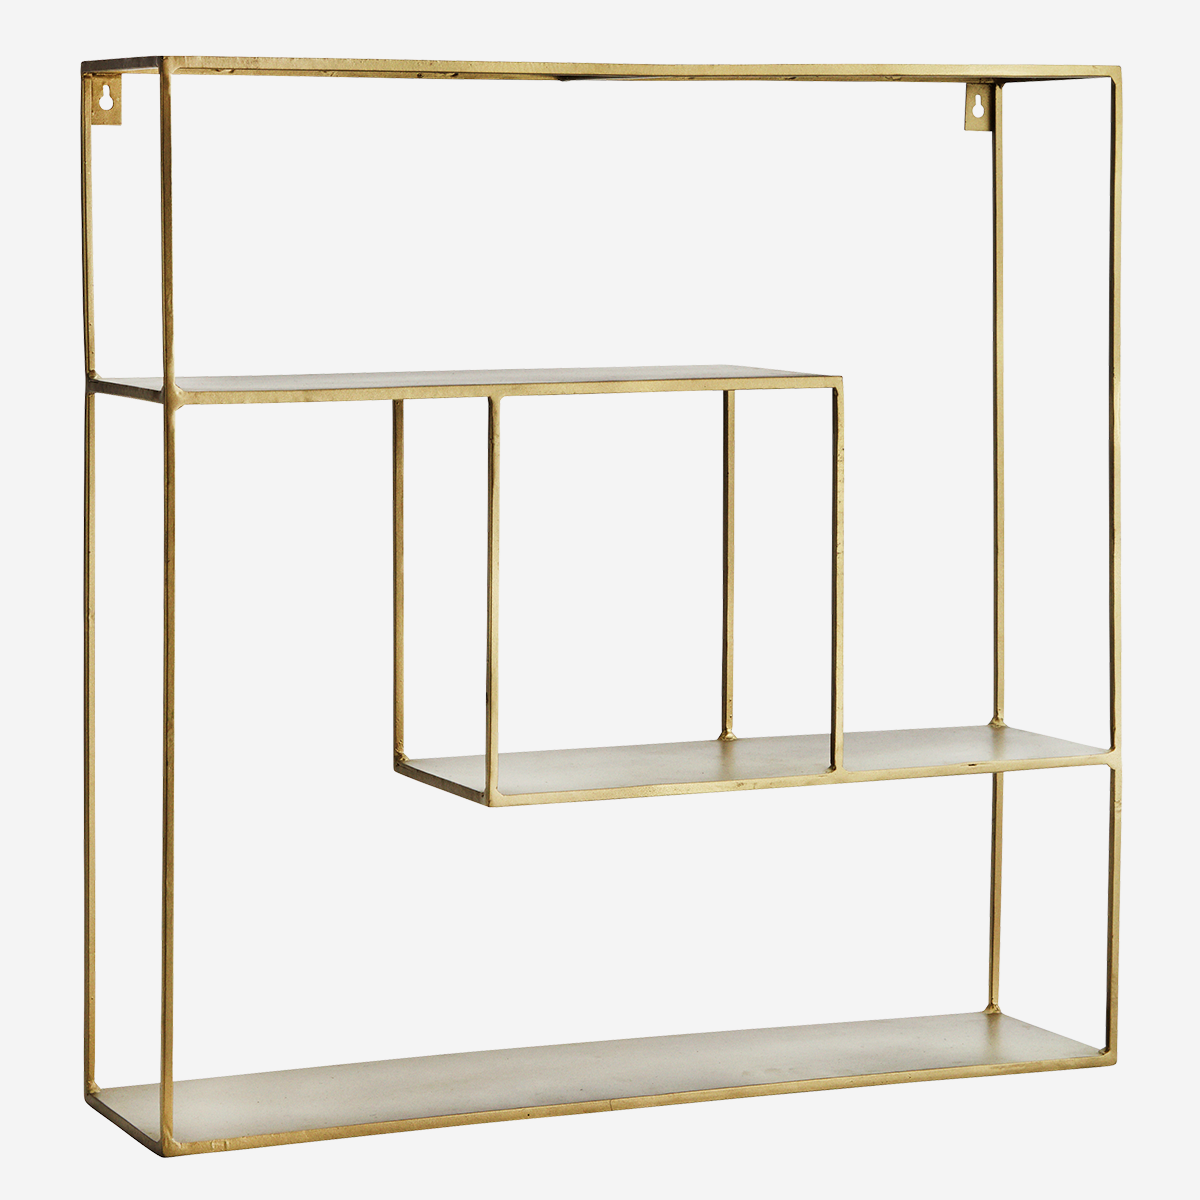 Quadratic Iron Shelf 61x15x61 cm. - Madam Stoltz